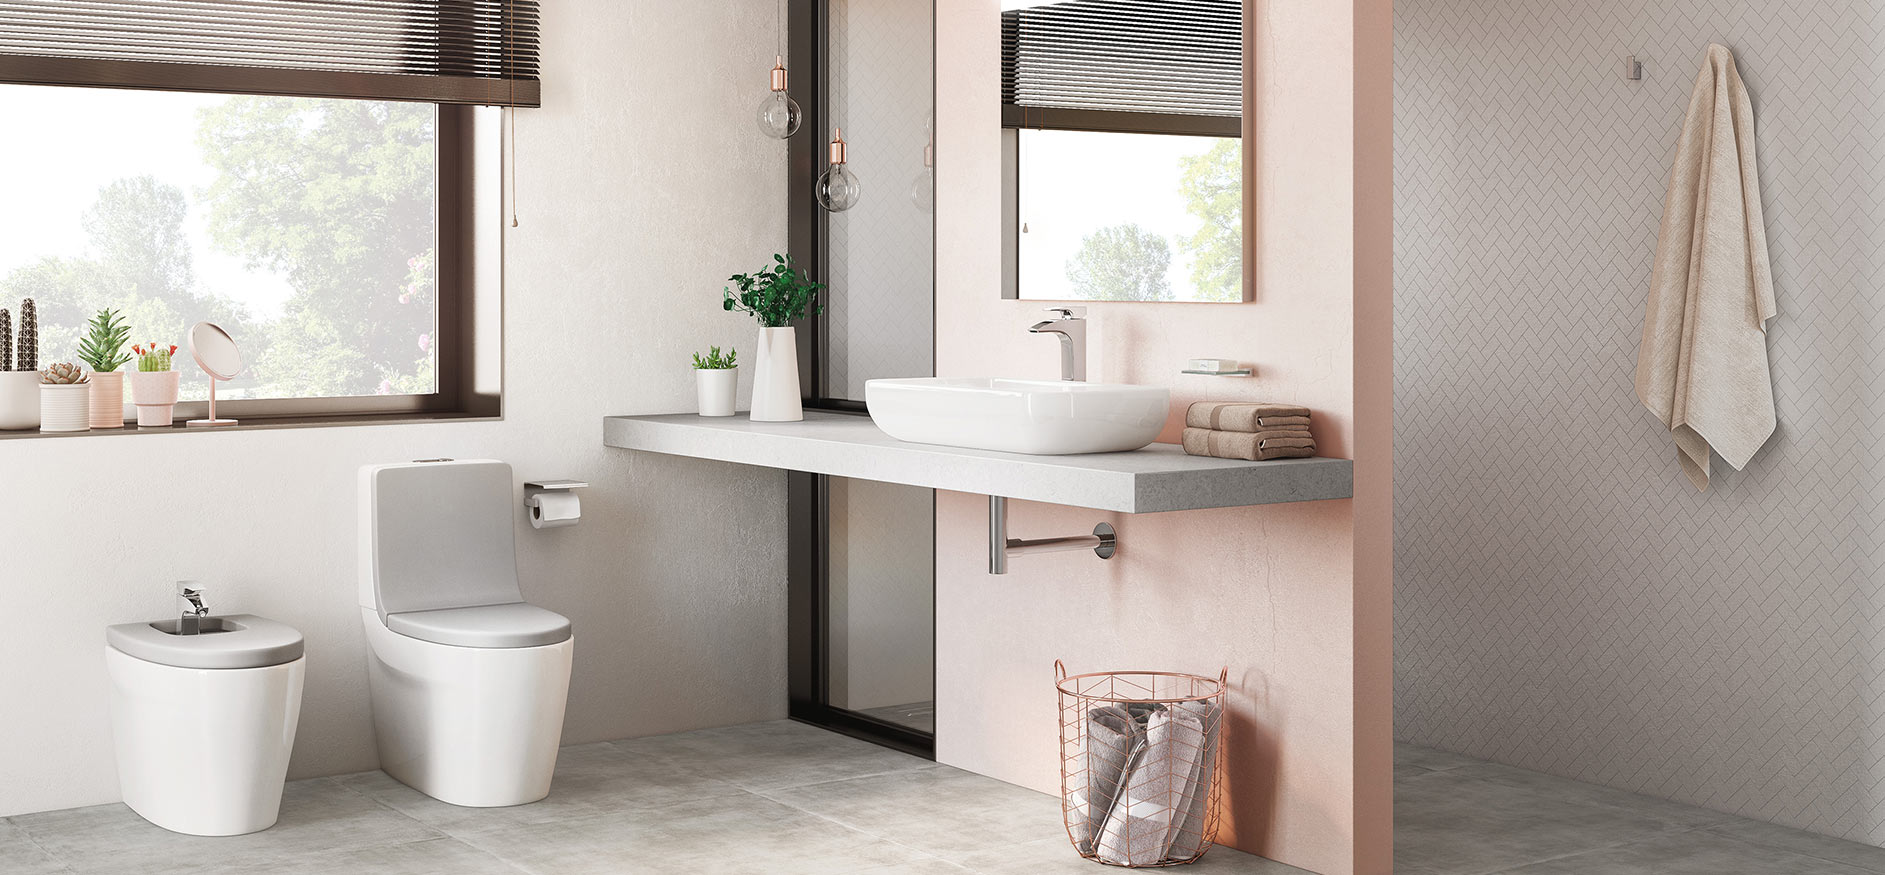 Things One Should Definitely Know While They Are Planning To Buy Wash Basins Also With Their Advantages